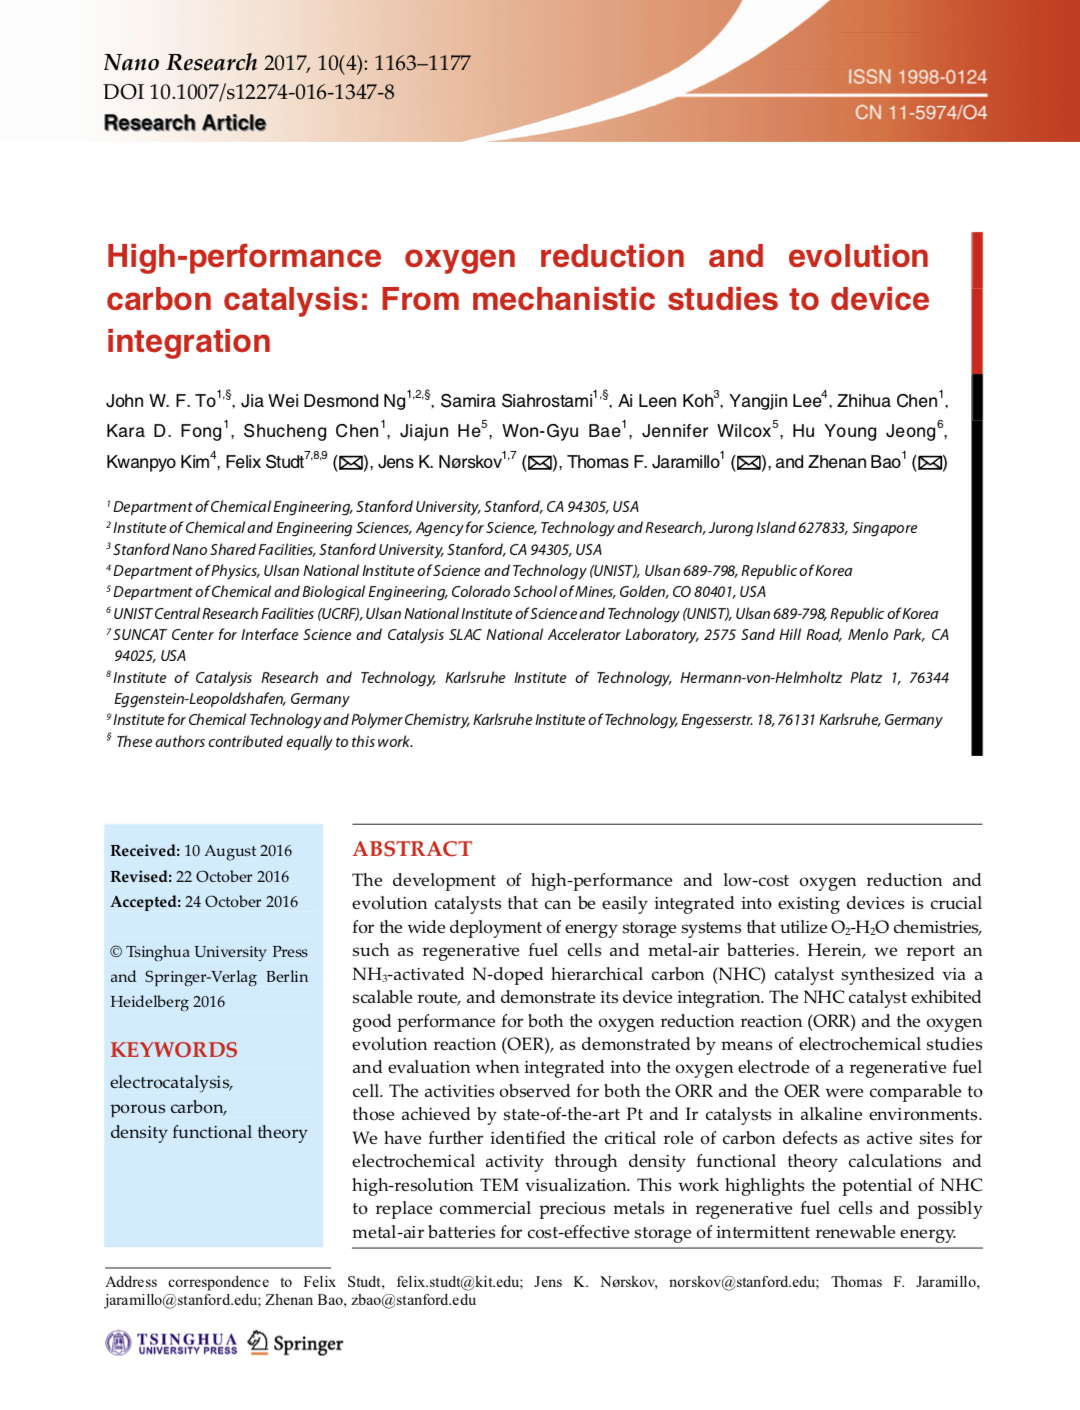 High-performance oxygen reduction and evolution carbon catalysis: From mechanistic studies to device